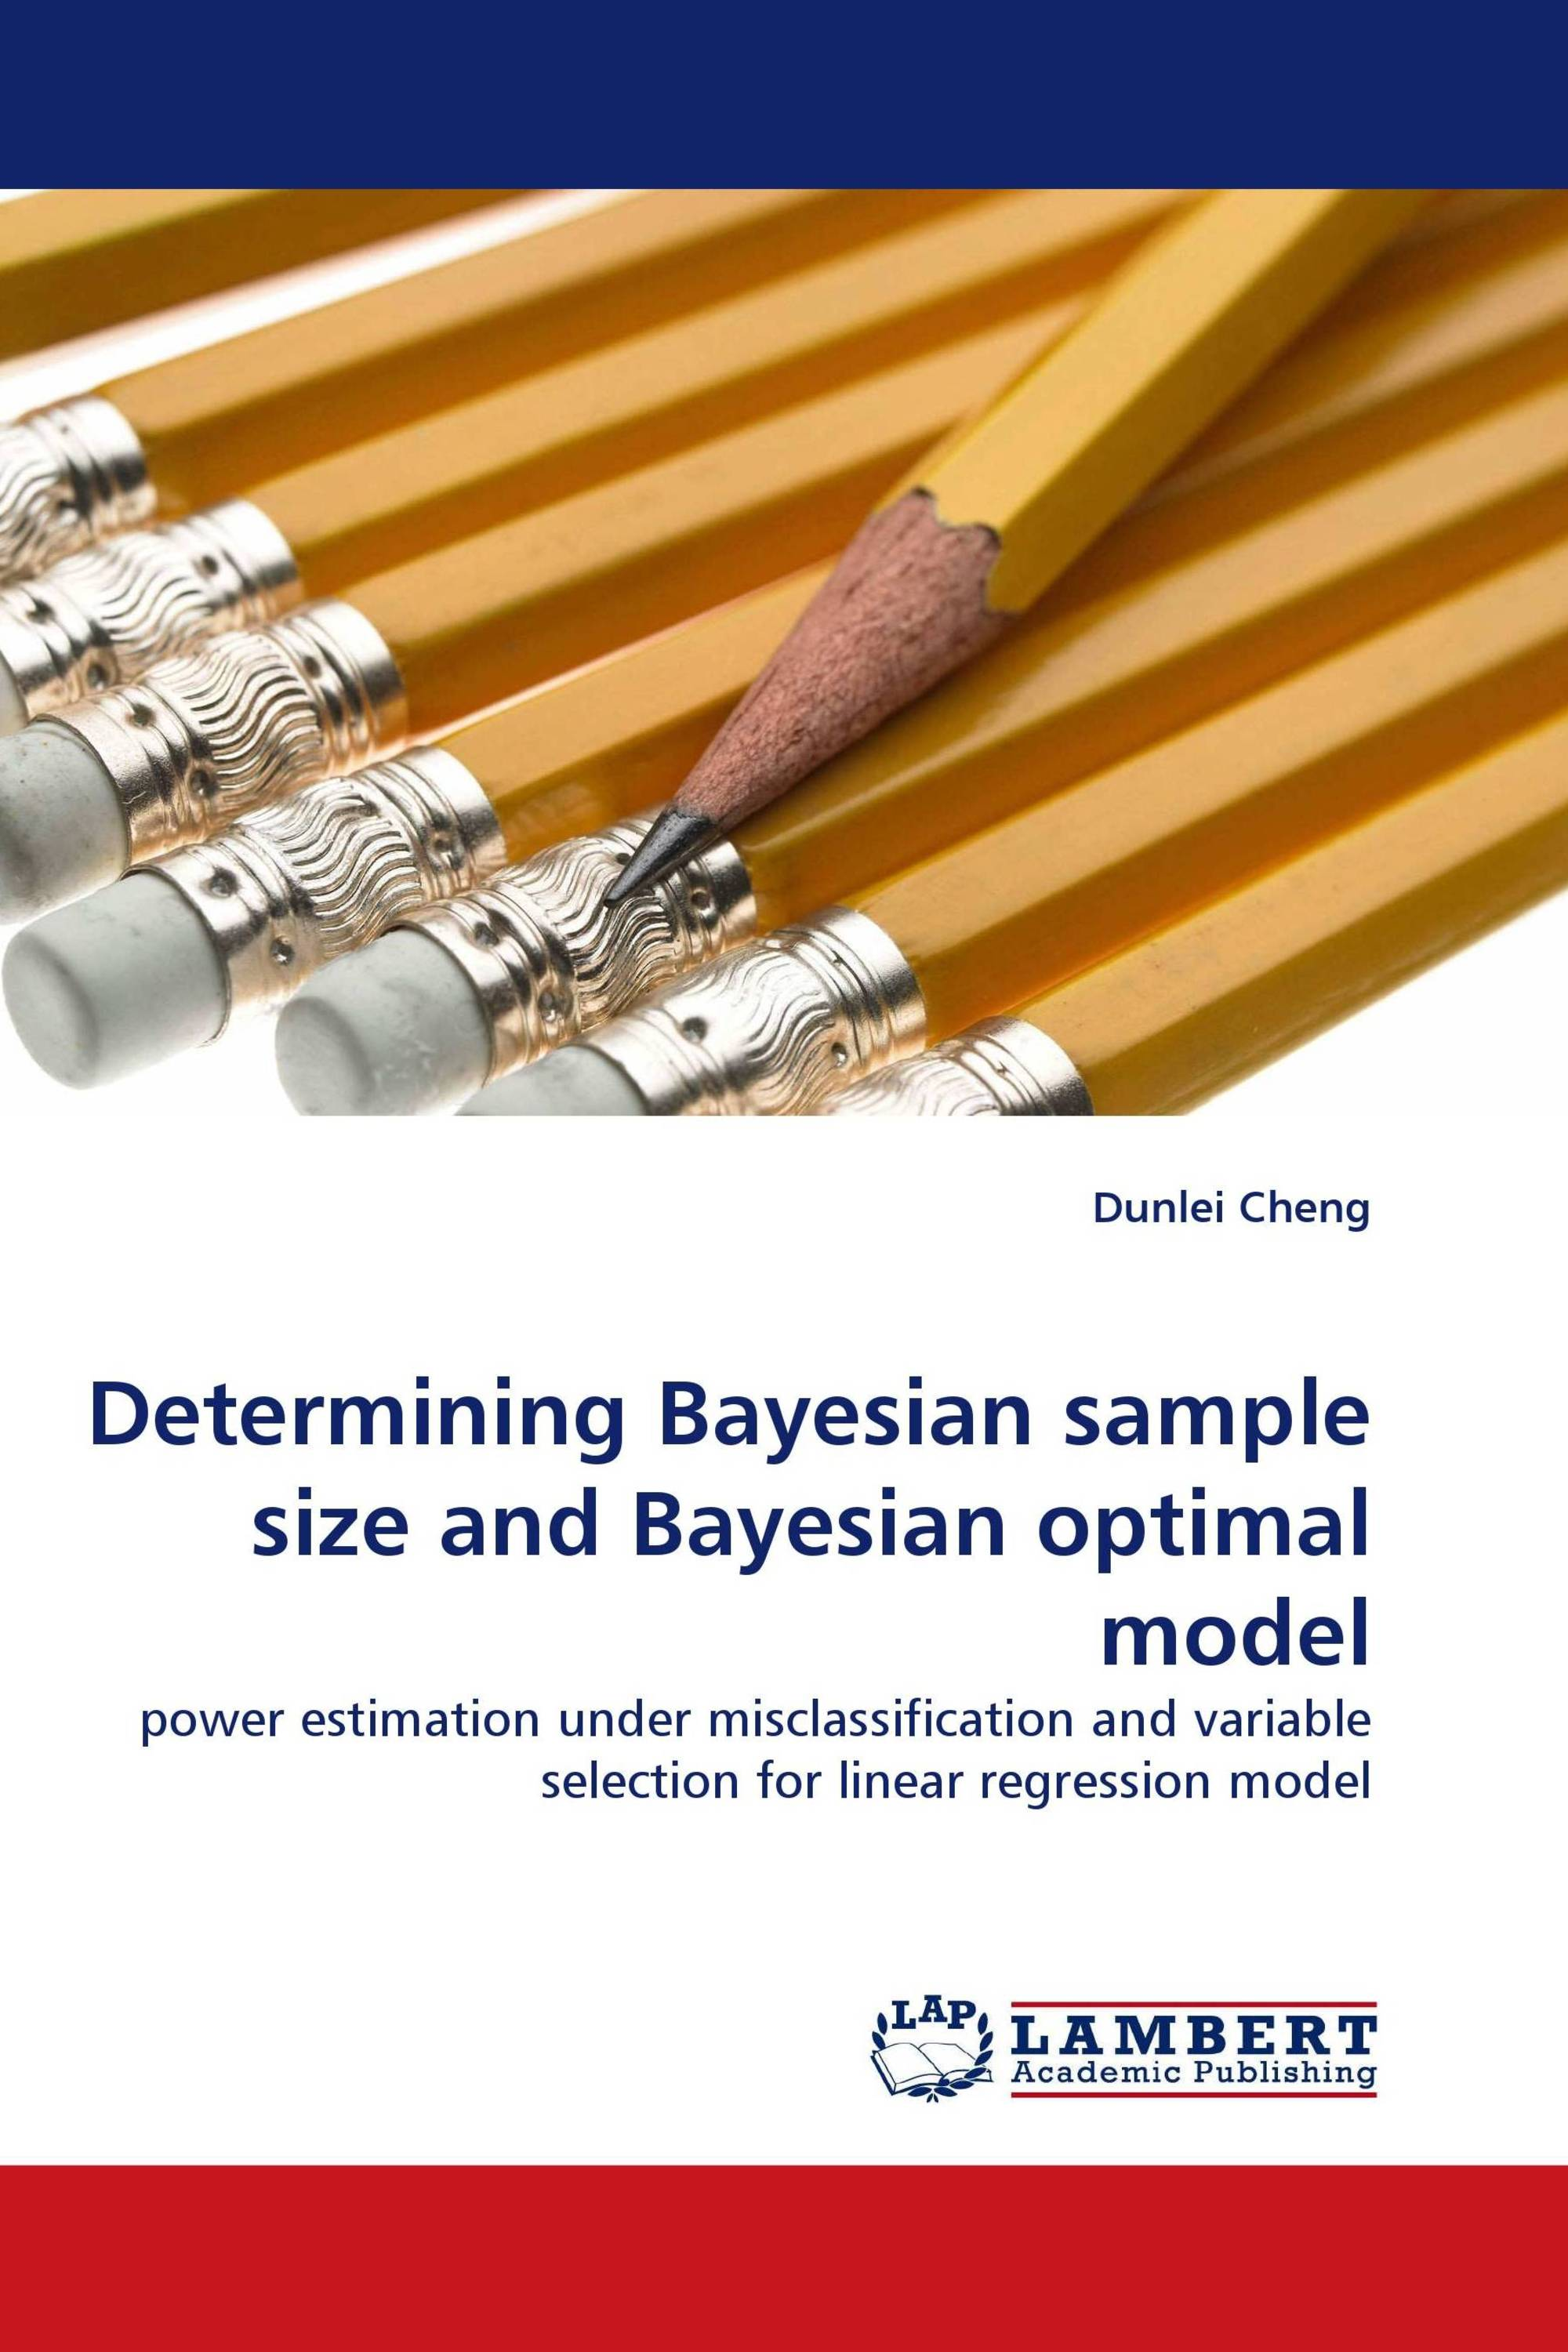 Determining Bayesian sample size and Bayesian optimal model